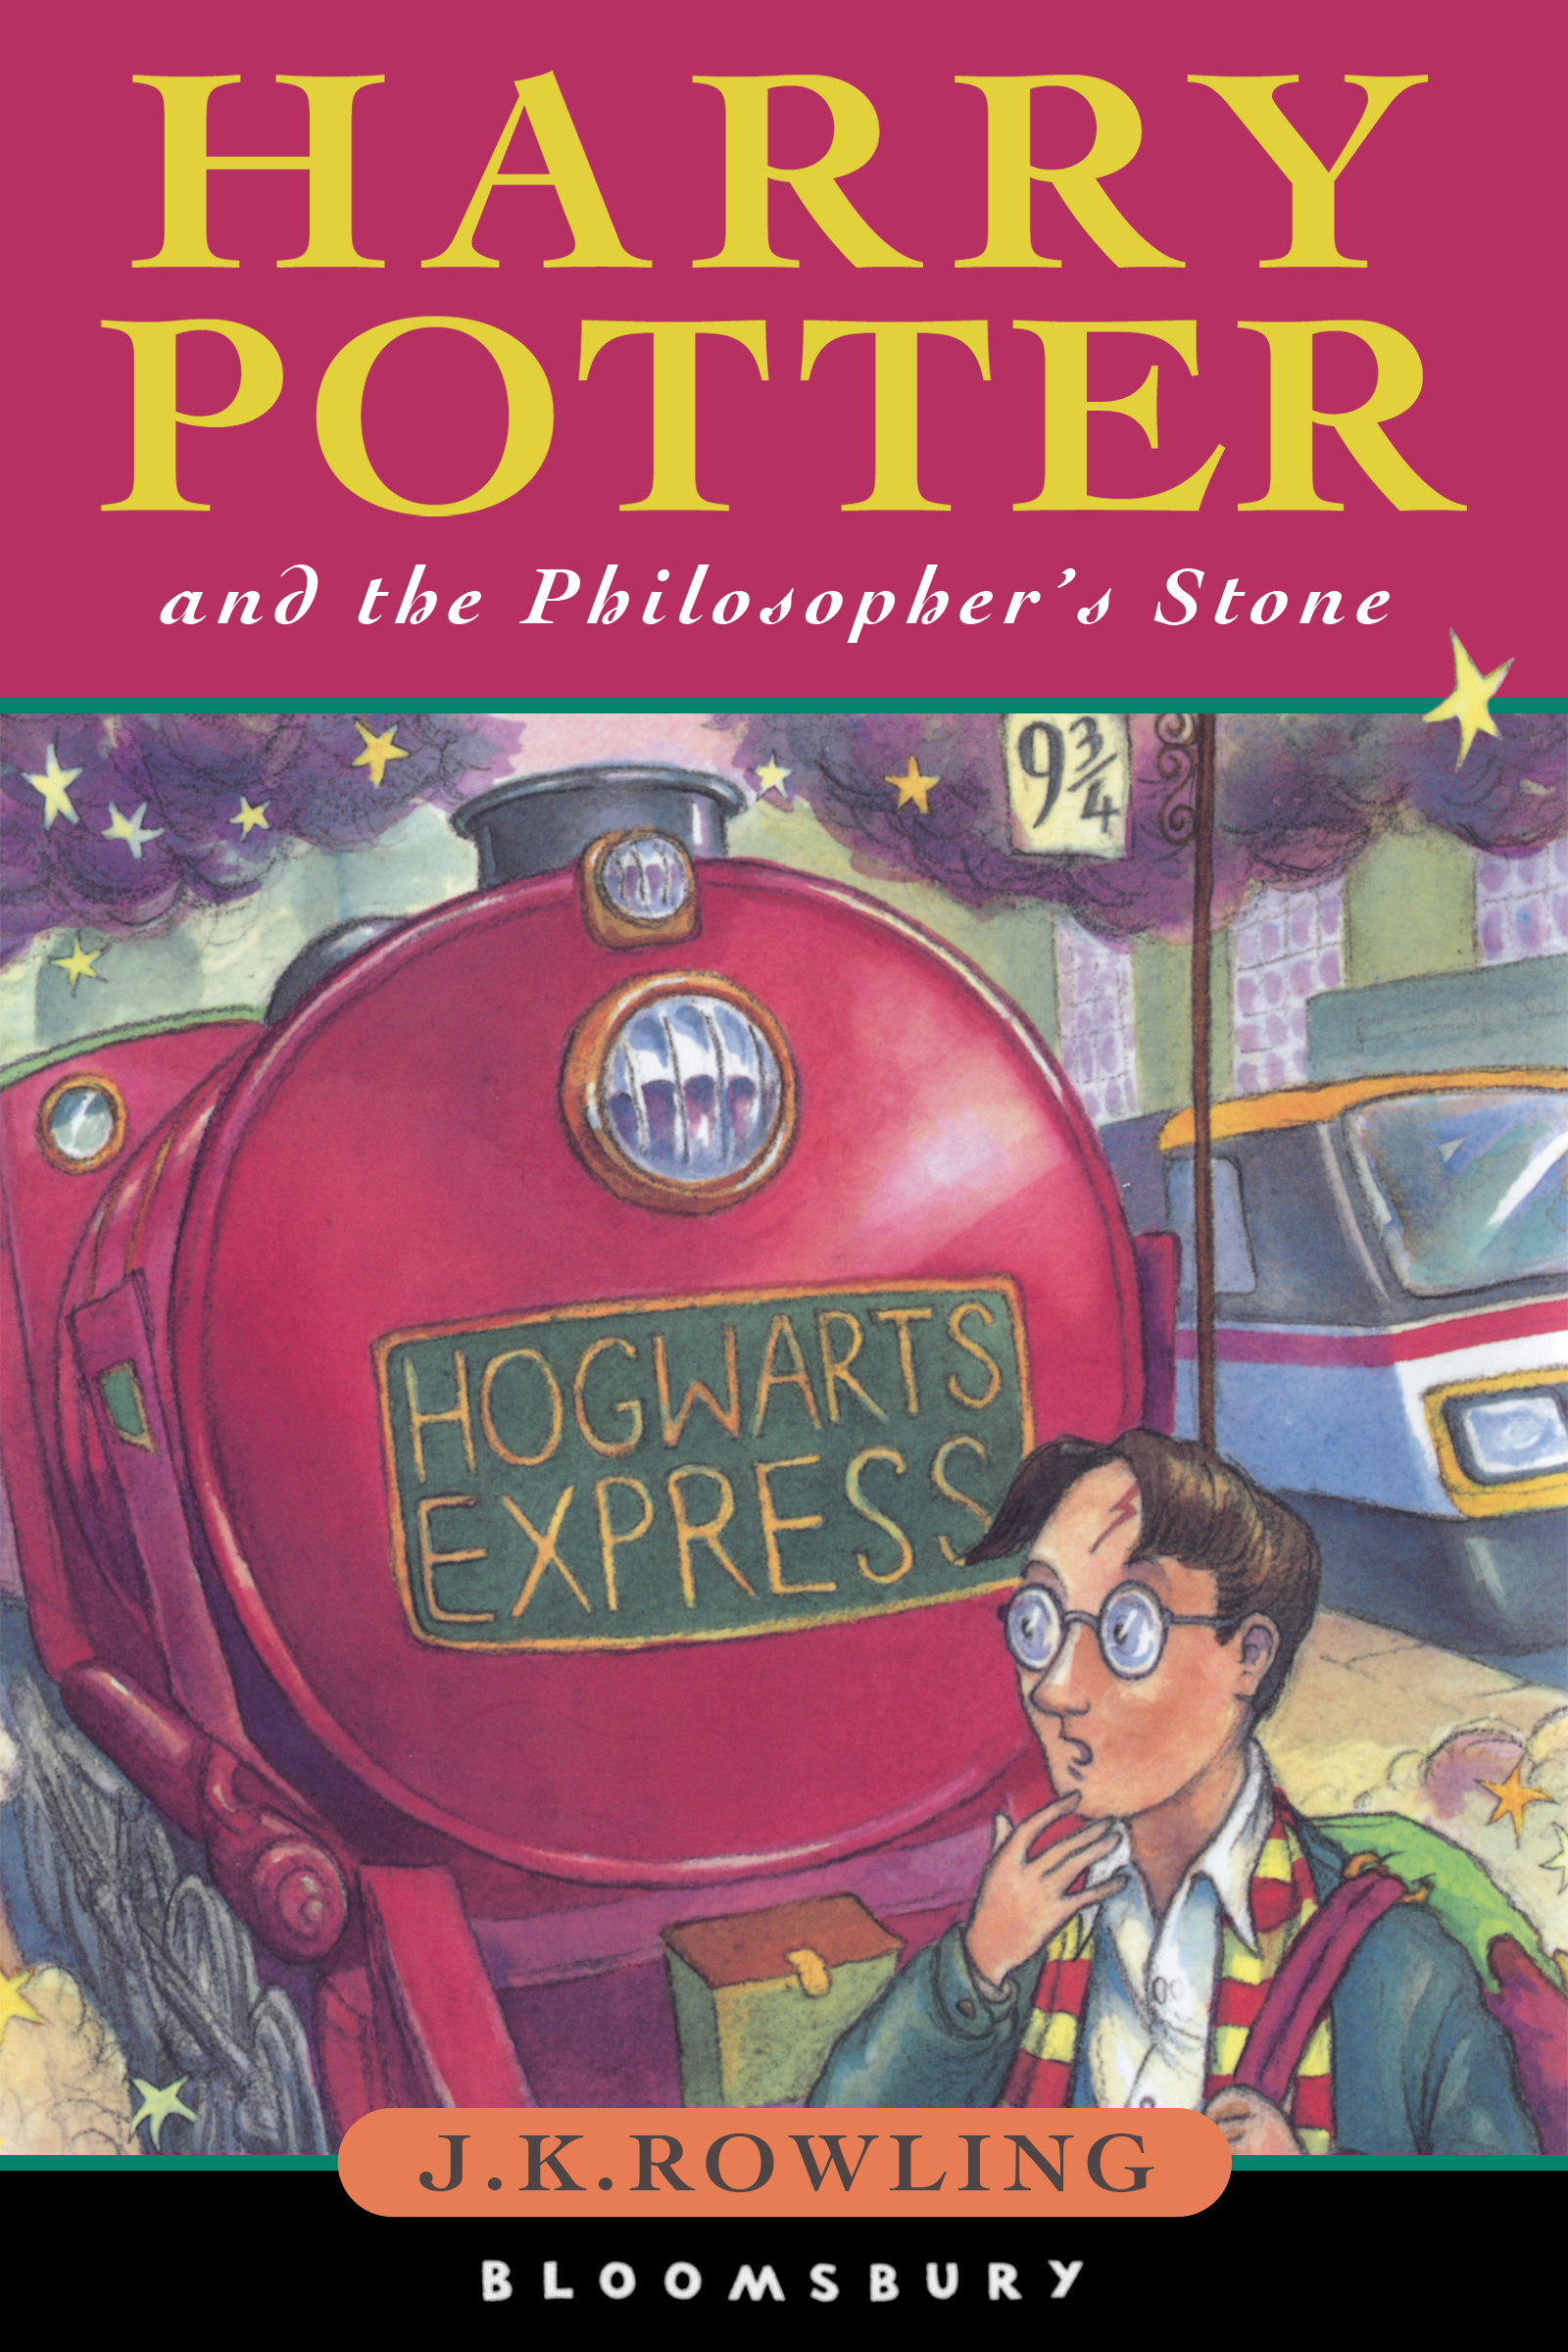 7 New Avatar for Harry Potter Book Covers | Let's Start ...